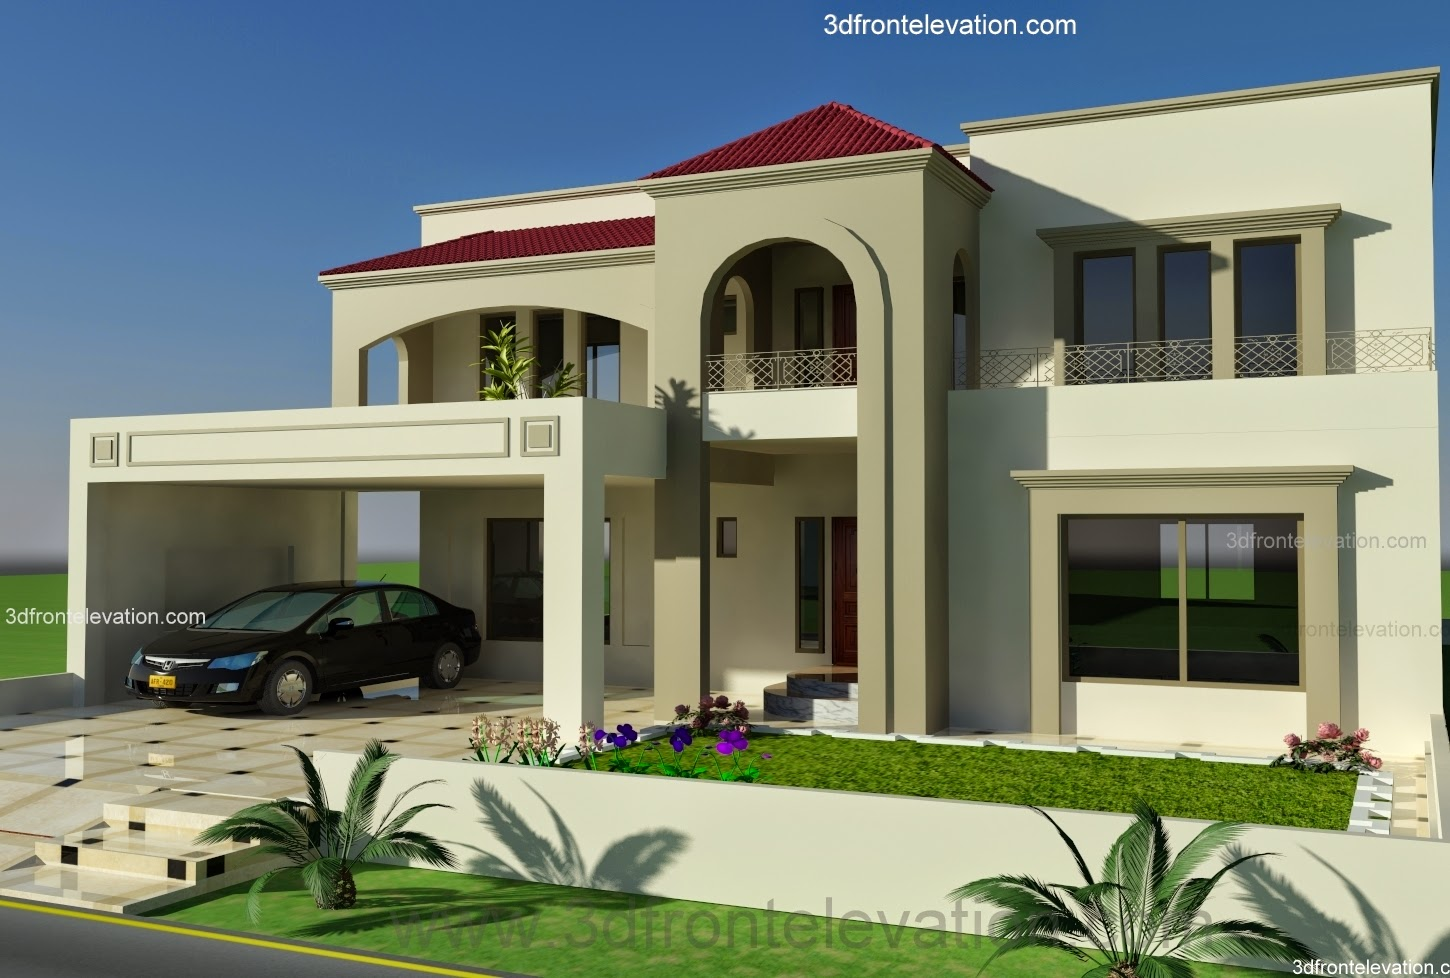 House design map - House Map Design Pakistan